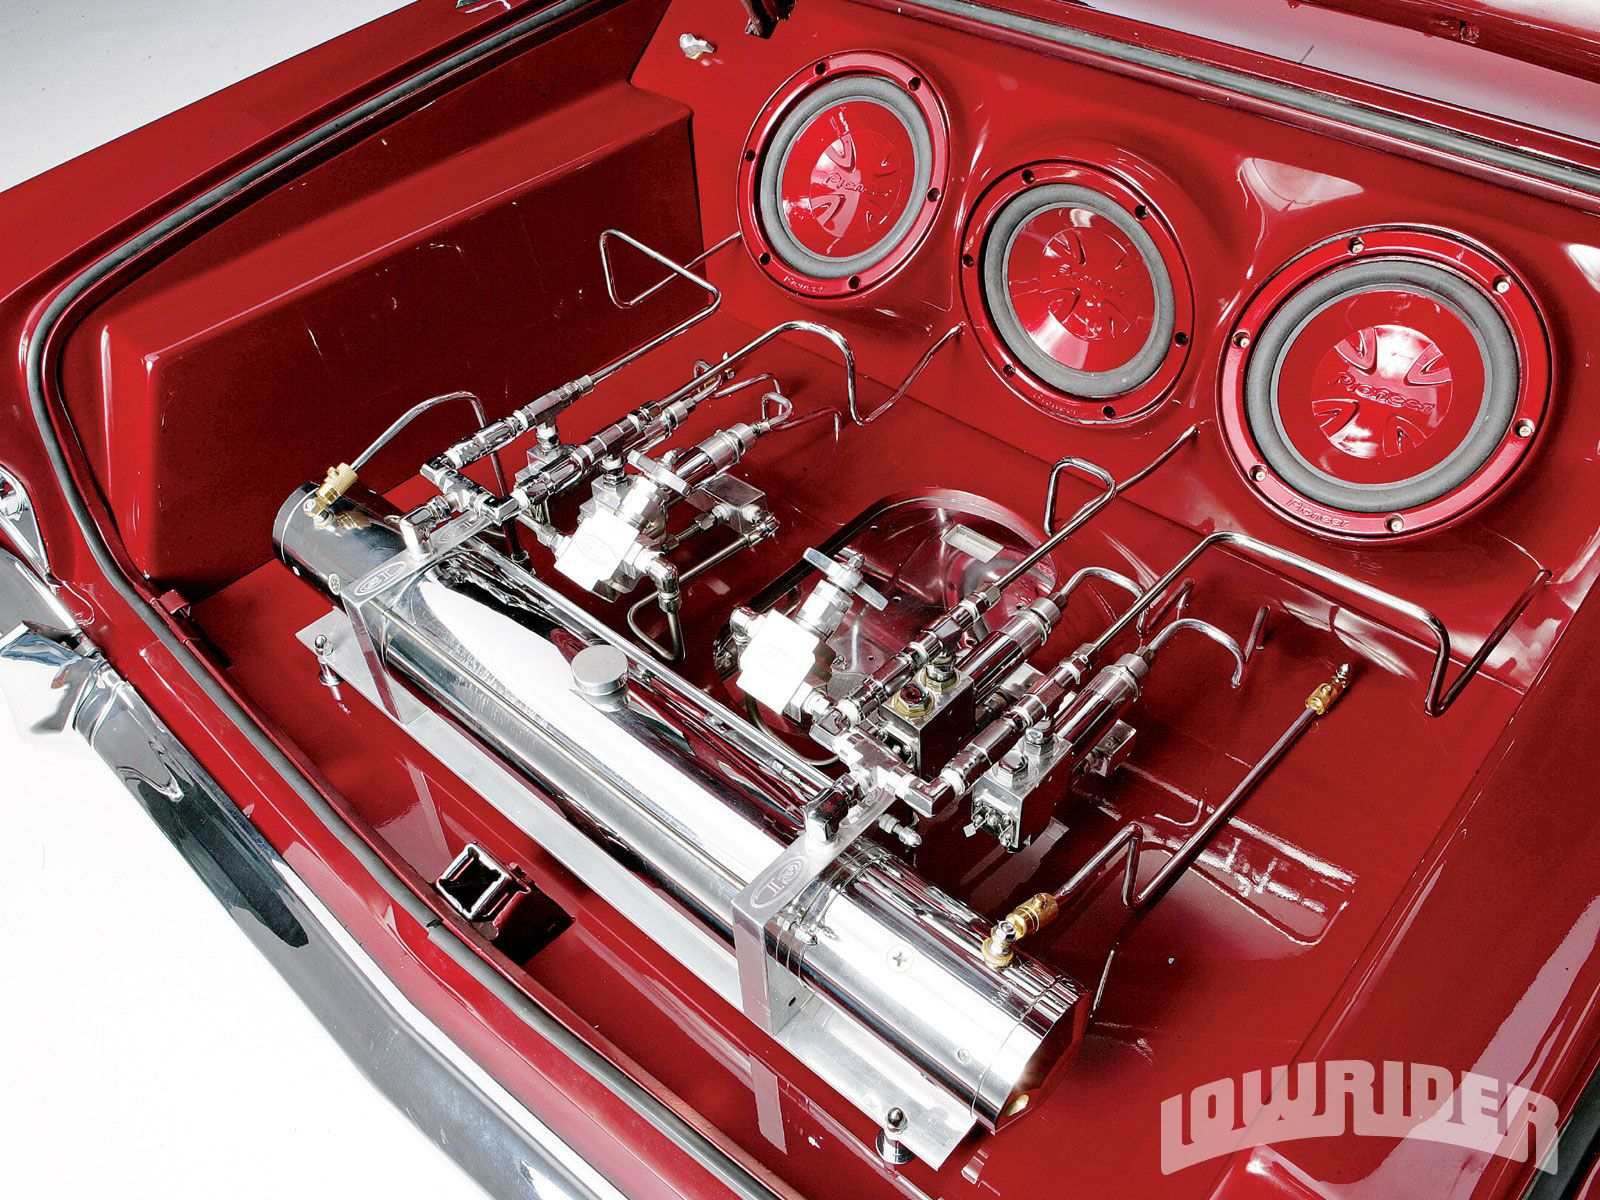 1963 Chevy Impala Convertible Hydraulic Pump